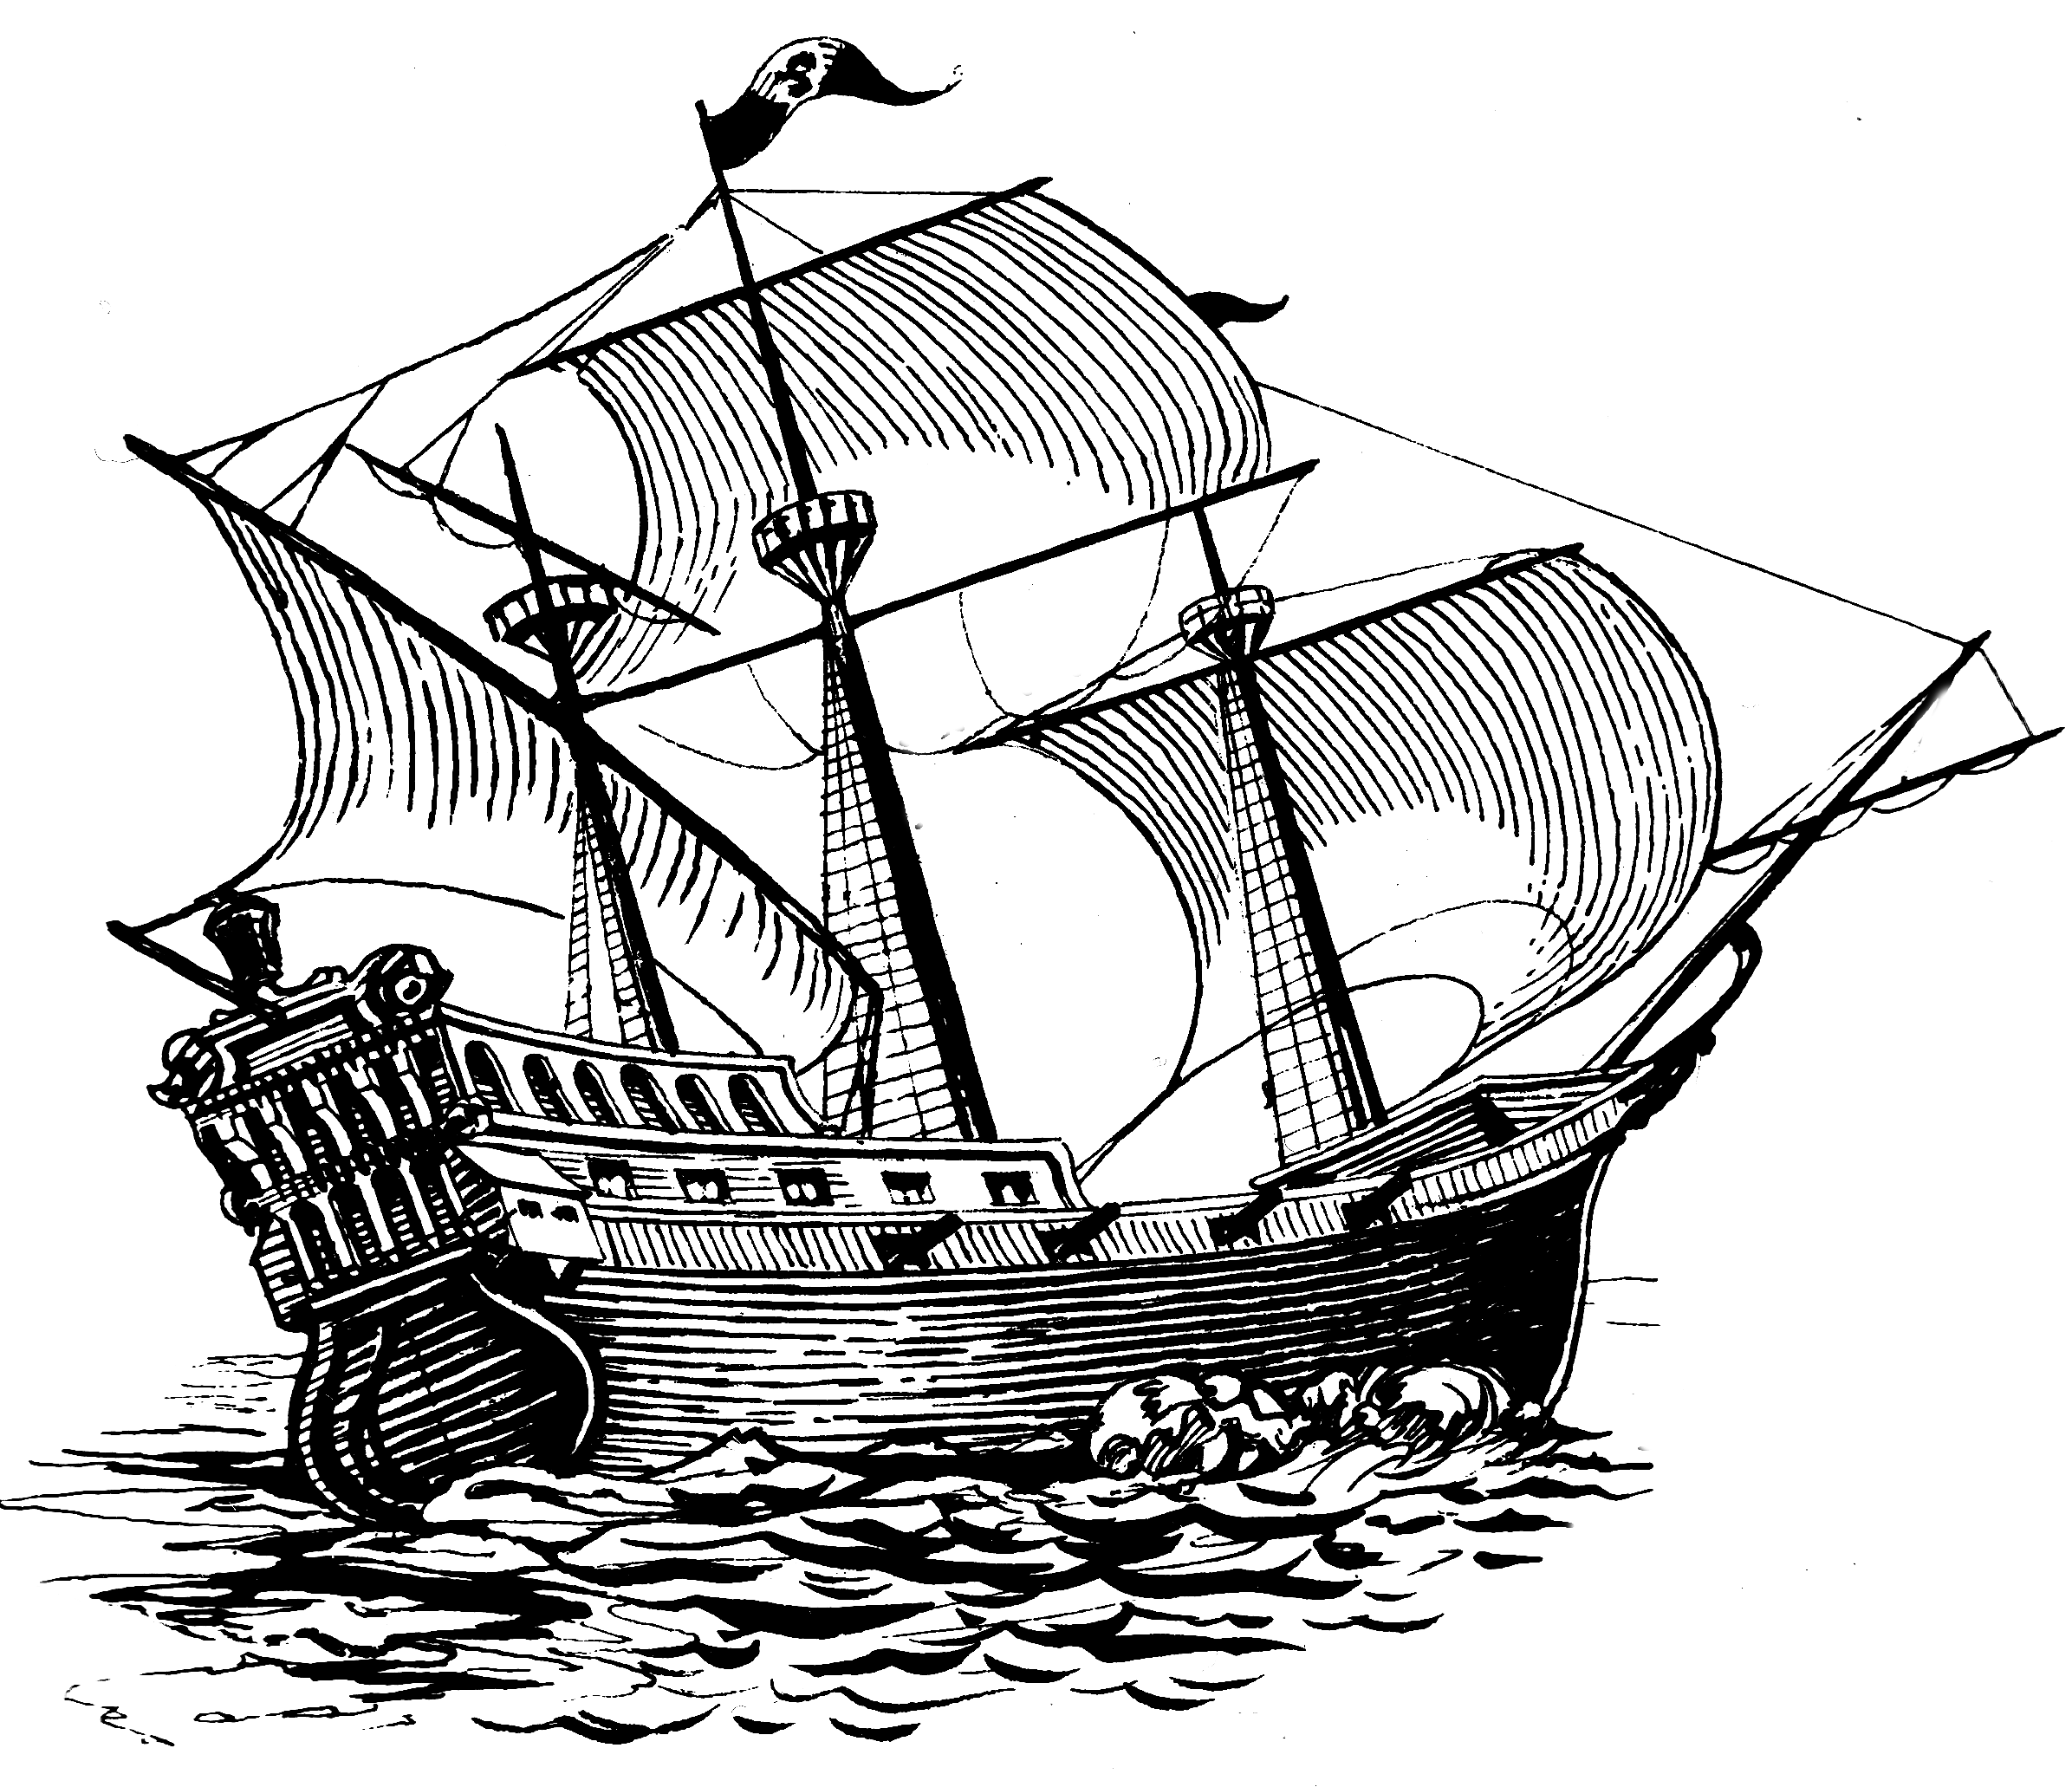 how to draw a spanish galleon galleon ship galleon downloads and sketches spanish how a galleon to draw